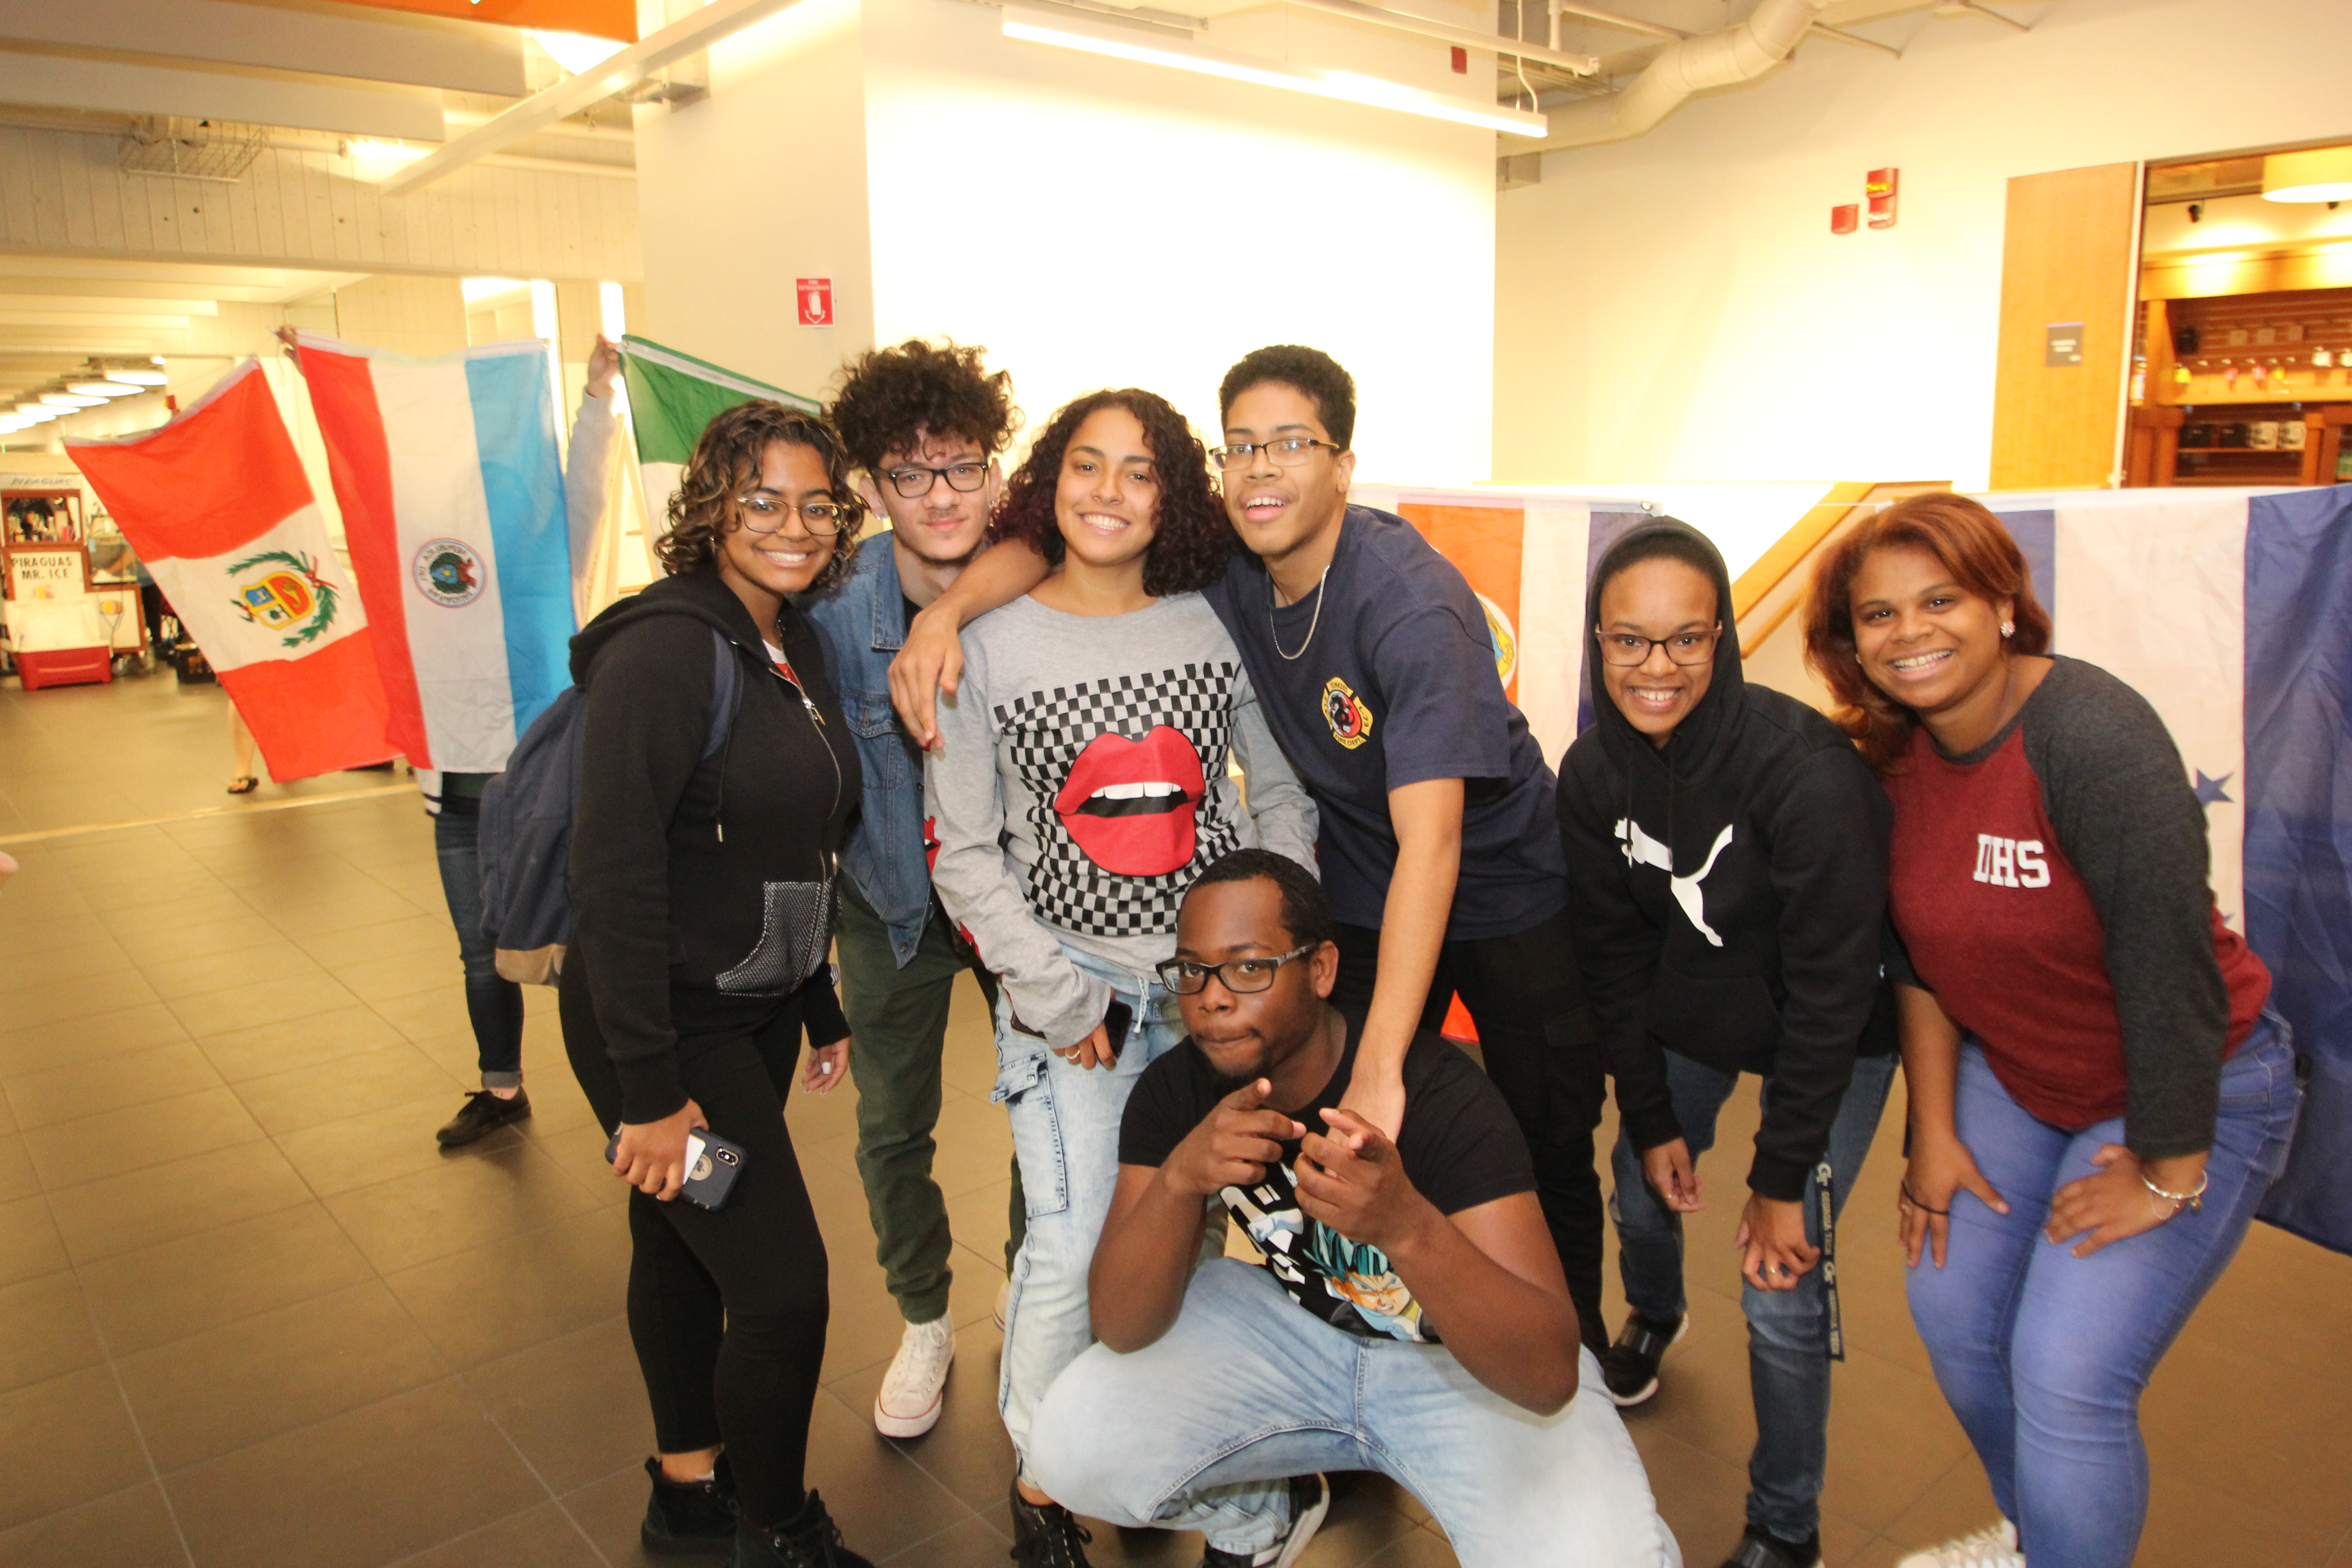 A group of students celebrate Hispanic Heritage Month during a Latinx festival at Holyoke Community College in October 2019.